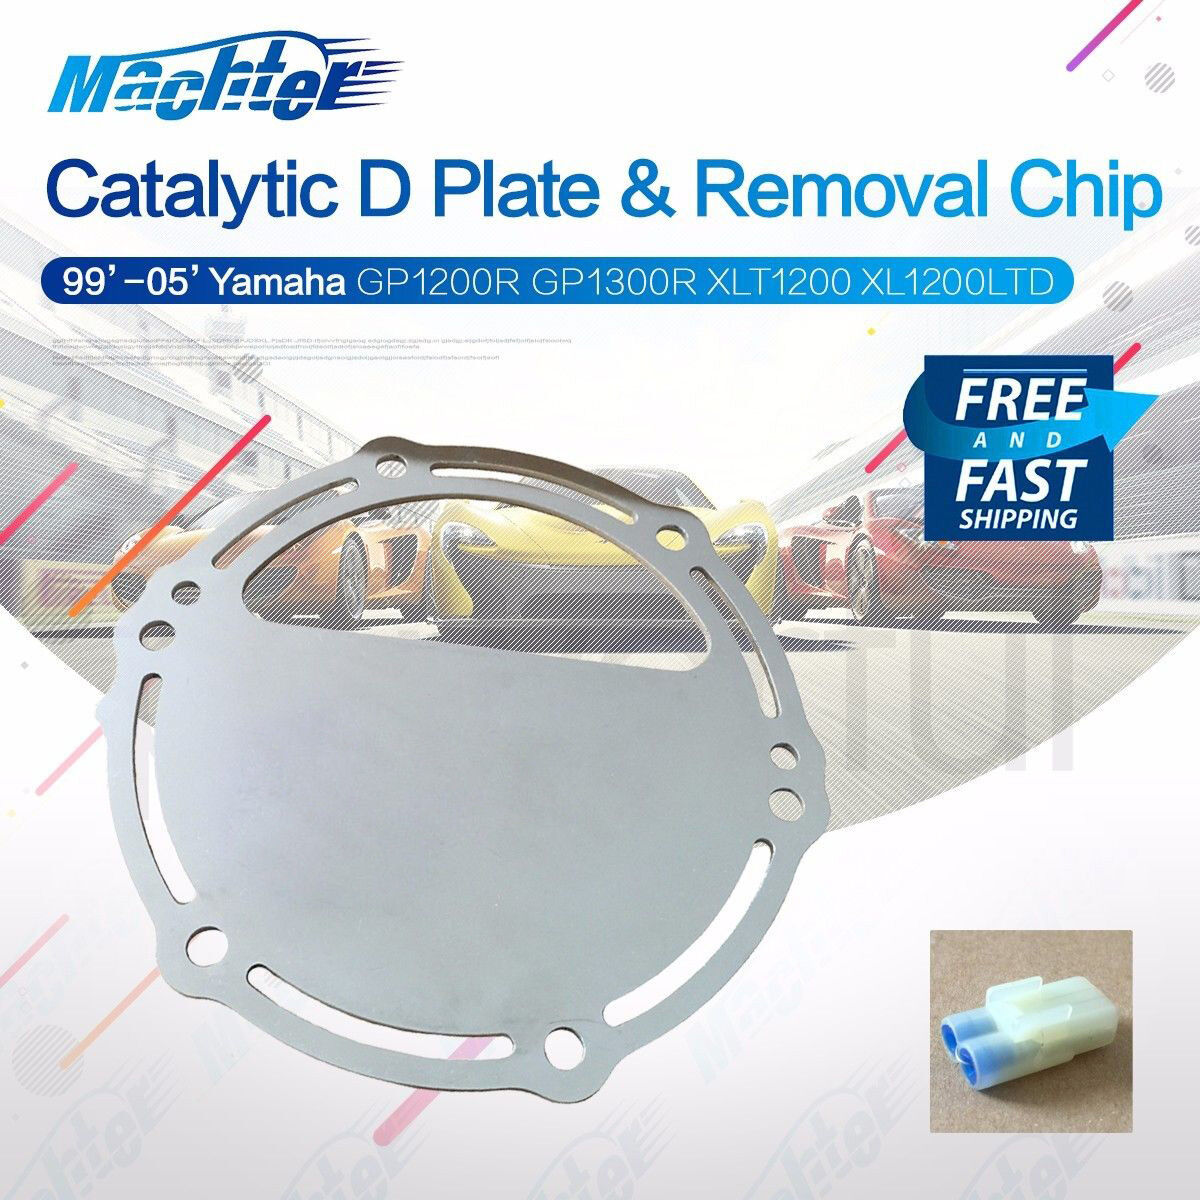 Yamaha Catalytic D Plate & Cat Removal Chip GPR XL XLT 1200 1300 Waverunner  | Shopping Bin - Search eBay faster